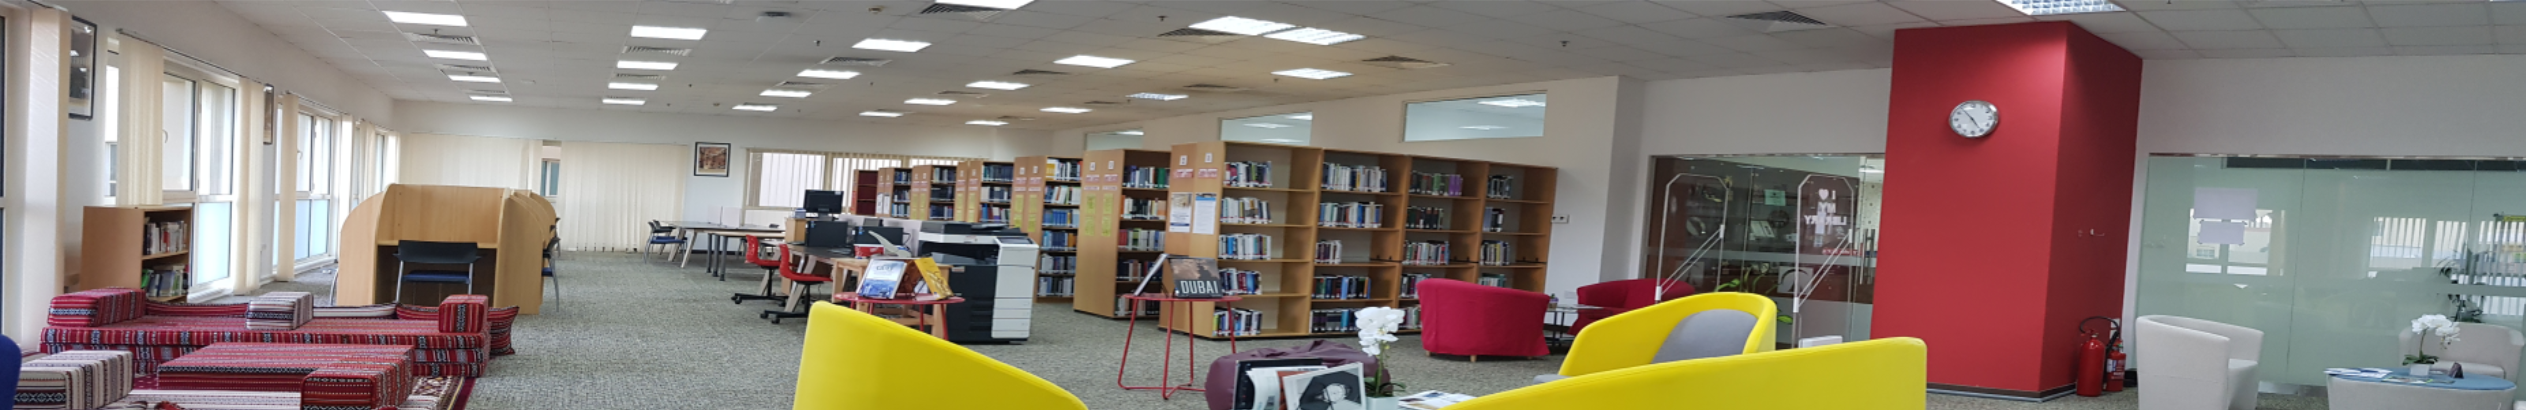 Library of the The British University in Dubai